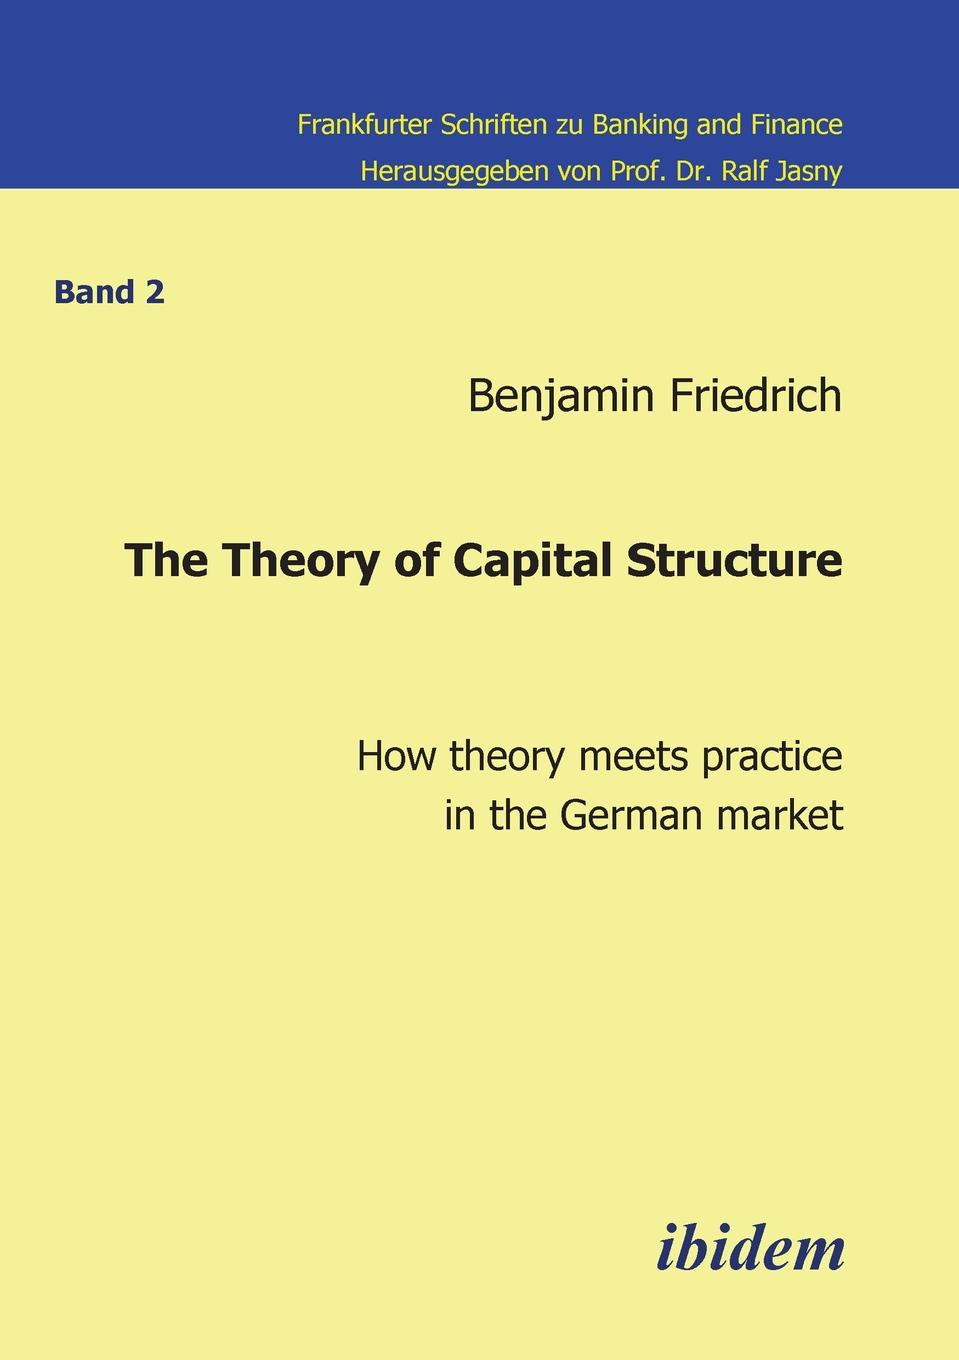 Benjamin Friedrich The Theory of Capital Structure - How theory meets practice in the German market. gerald s martin capital structure and corporate financing decisions theory evidence and practice